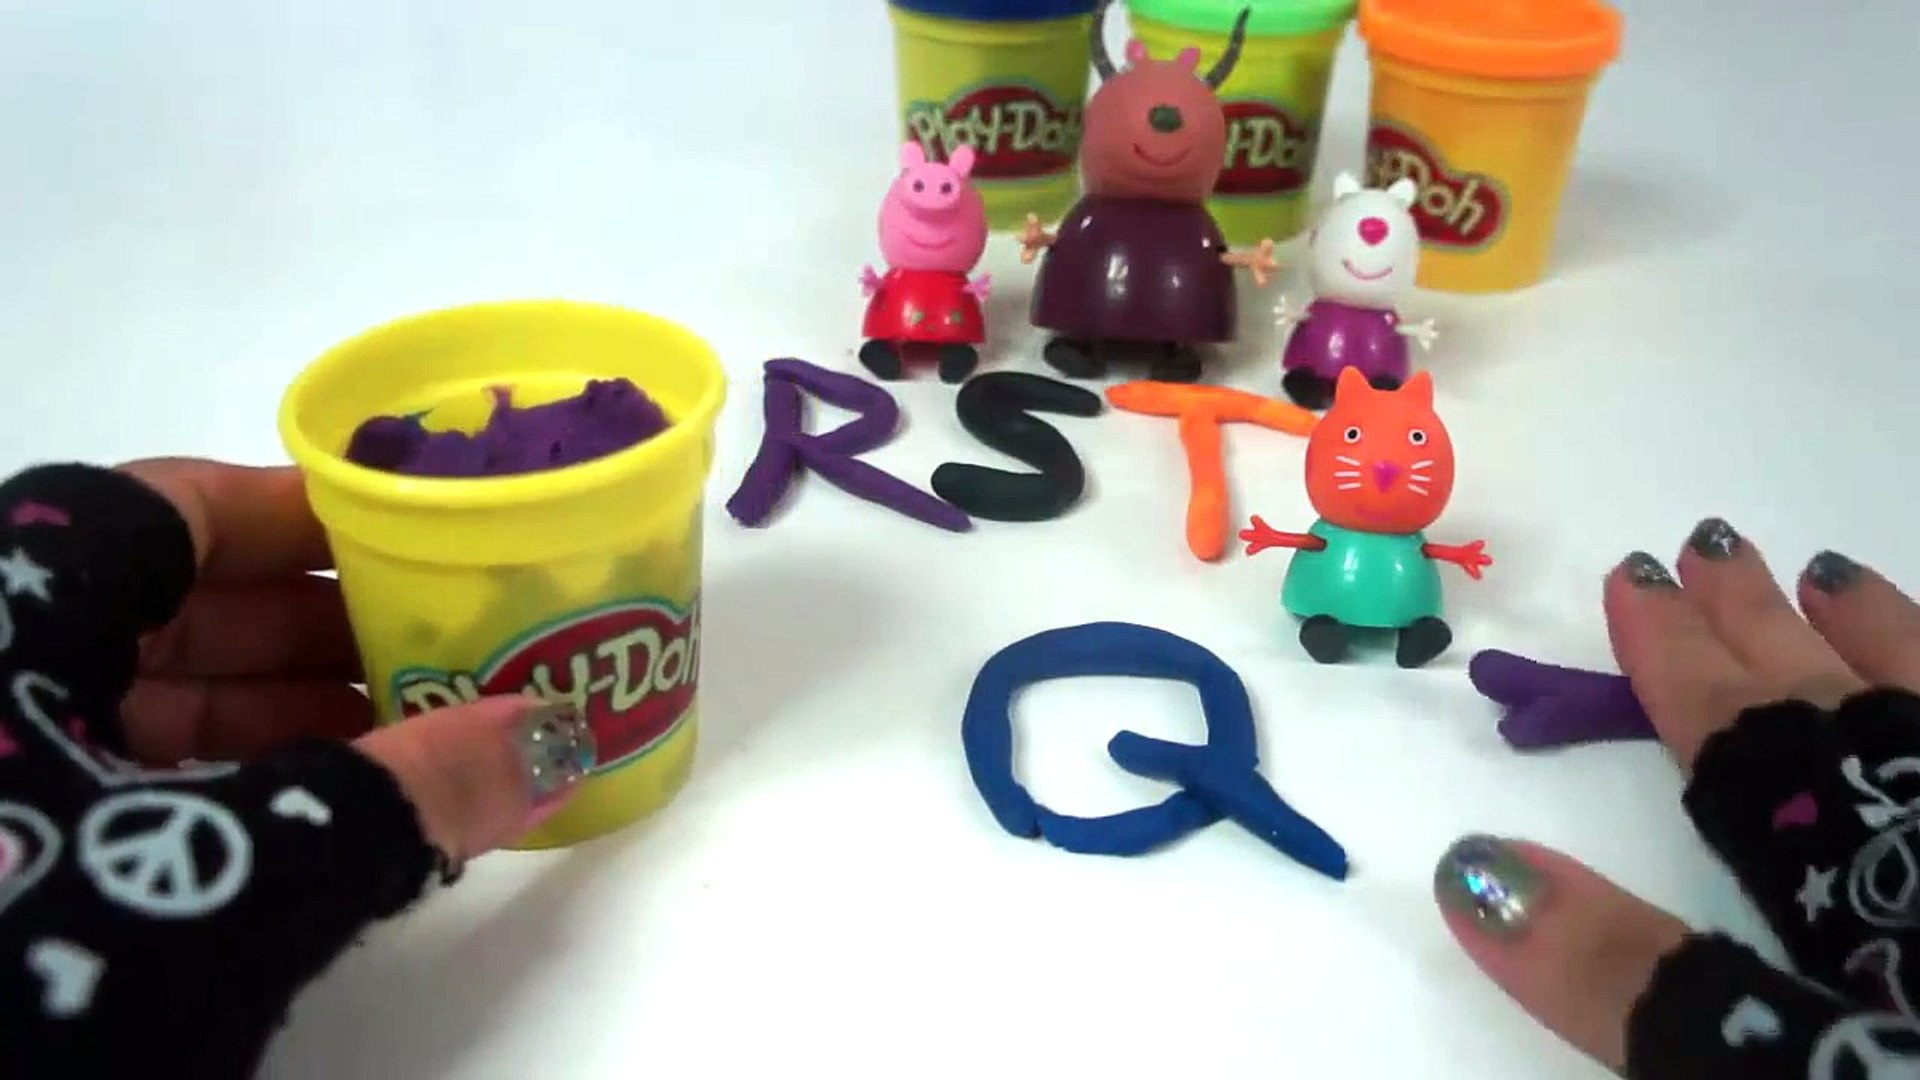 Learn Your Letters with Peppa Pig and Friends!! Letters P-T in Upper & Lower Case out of Play-Do